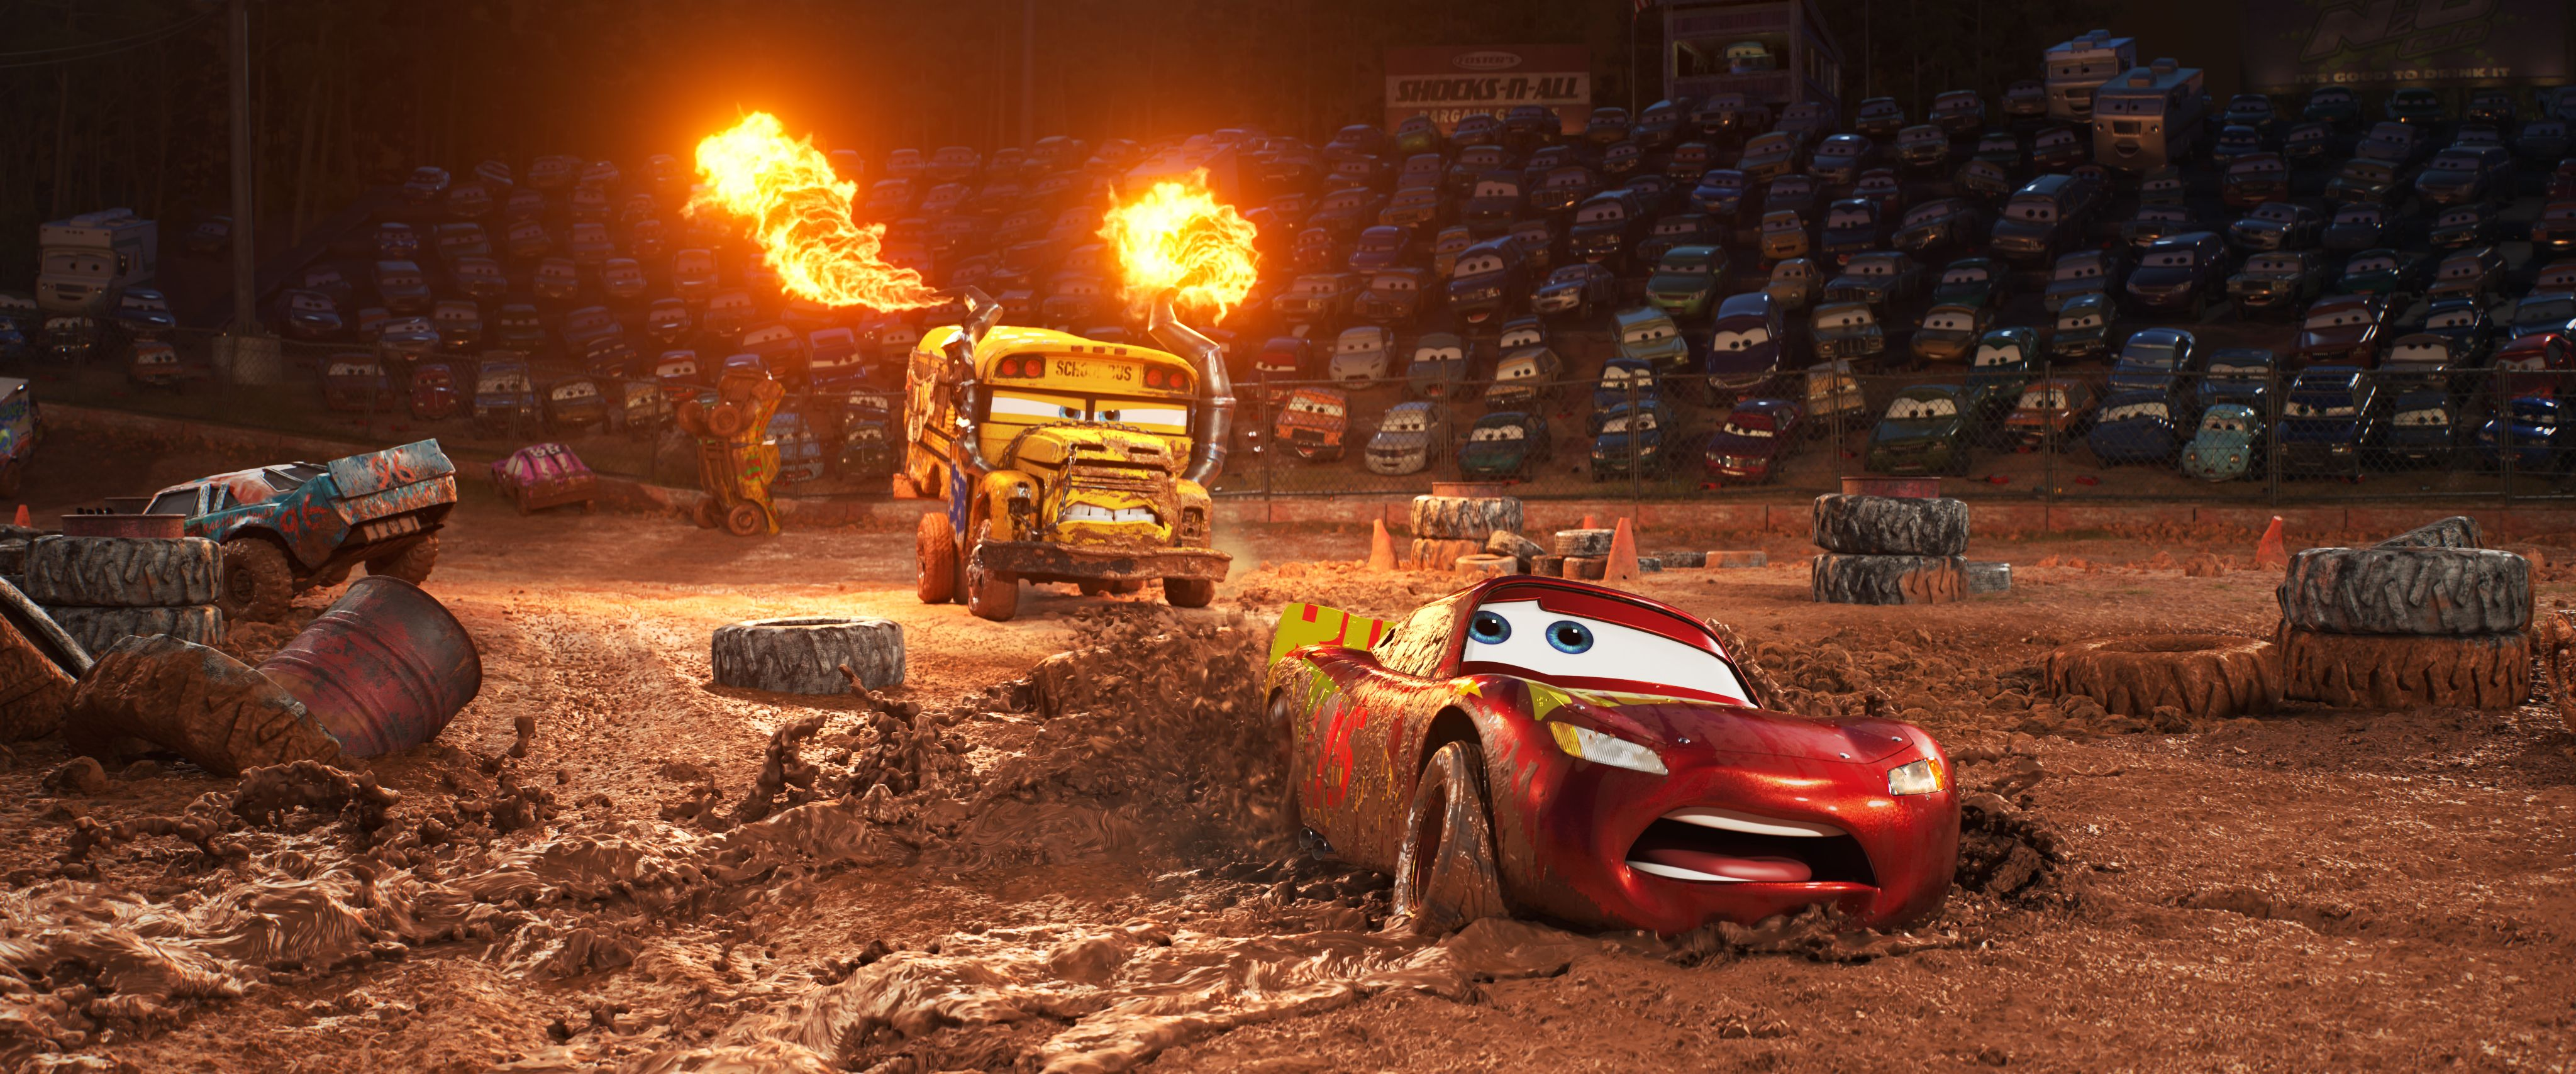 Image Result For Disney Cars Miss Fritter Wallpaper With Images